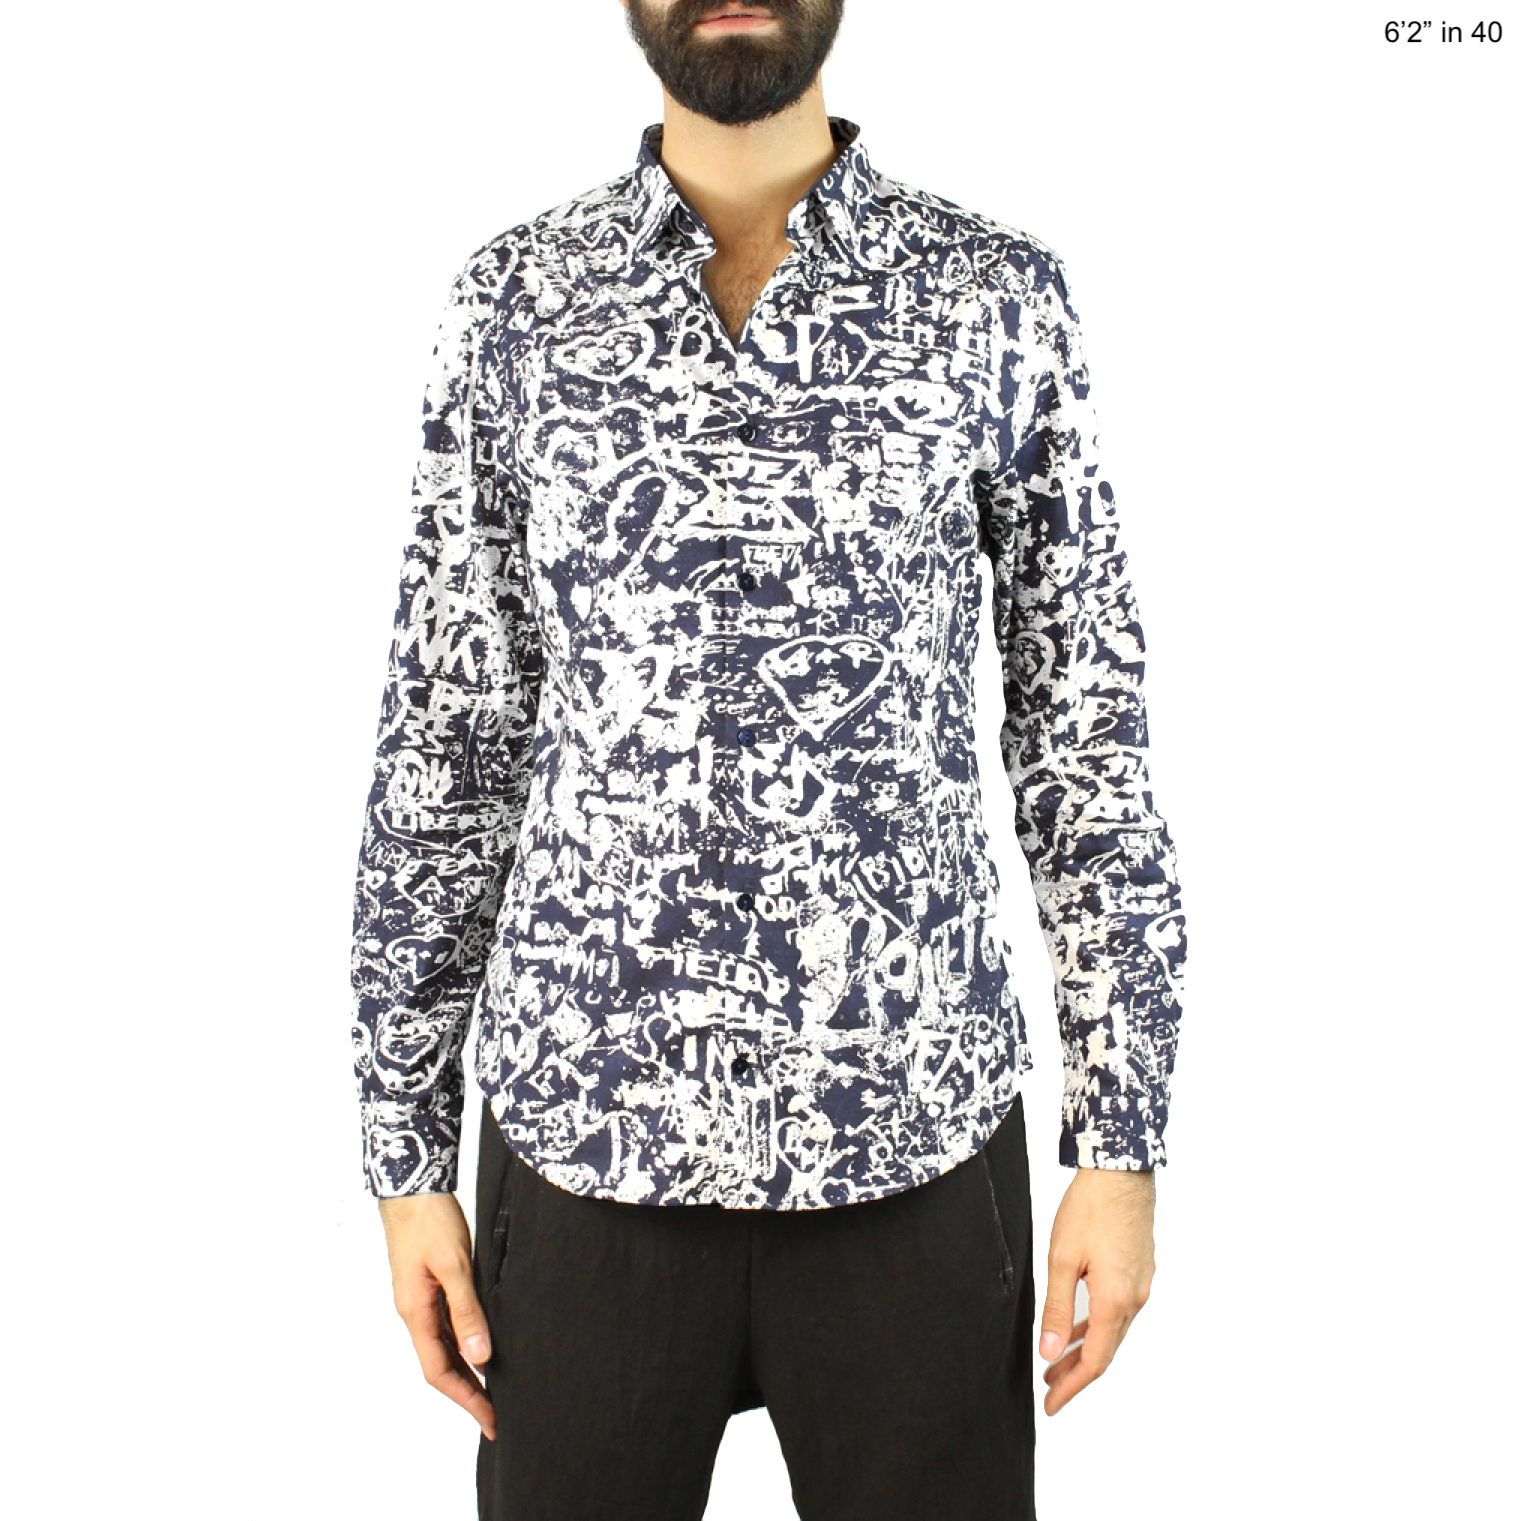 CARVEN_75576a-1020x1536.png